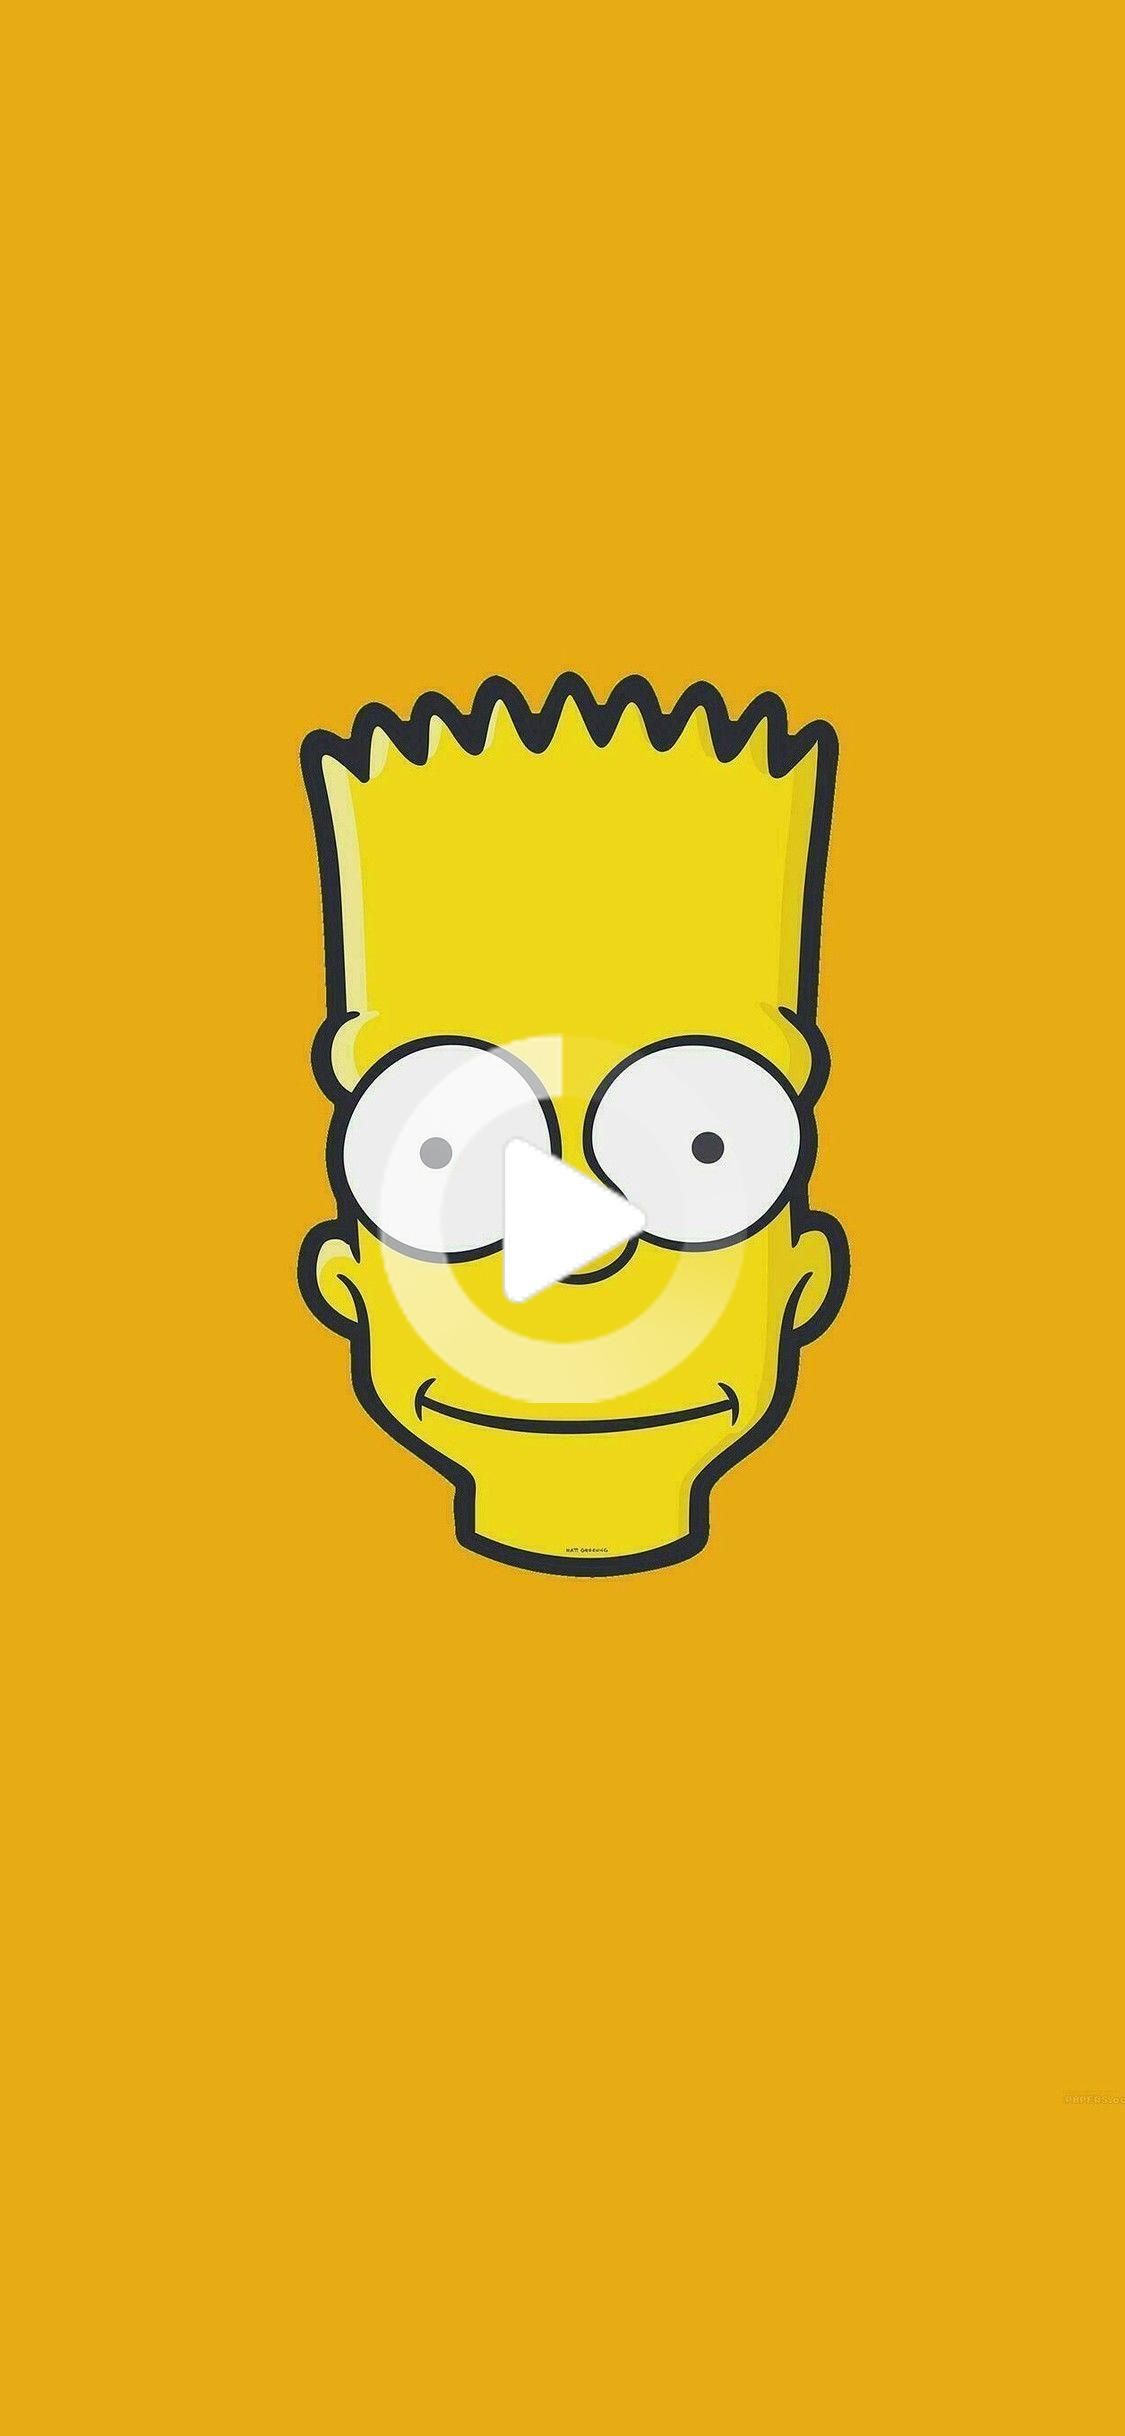 Bart Simpson Iphone Wallpapers Top Free Bart Simpson Throughout The Simpsons Wallpapers Iphone Simpson Wallpaper Iphone Iphone Wallpaper Simpson